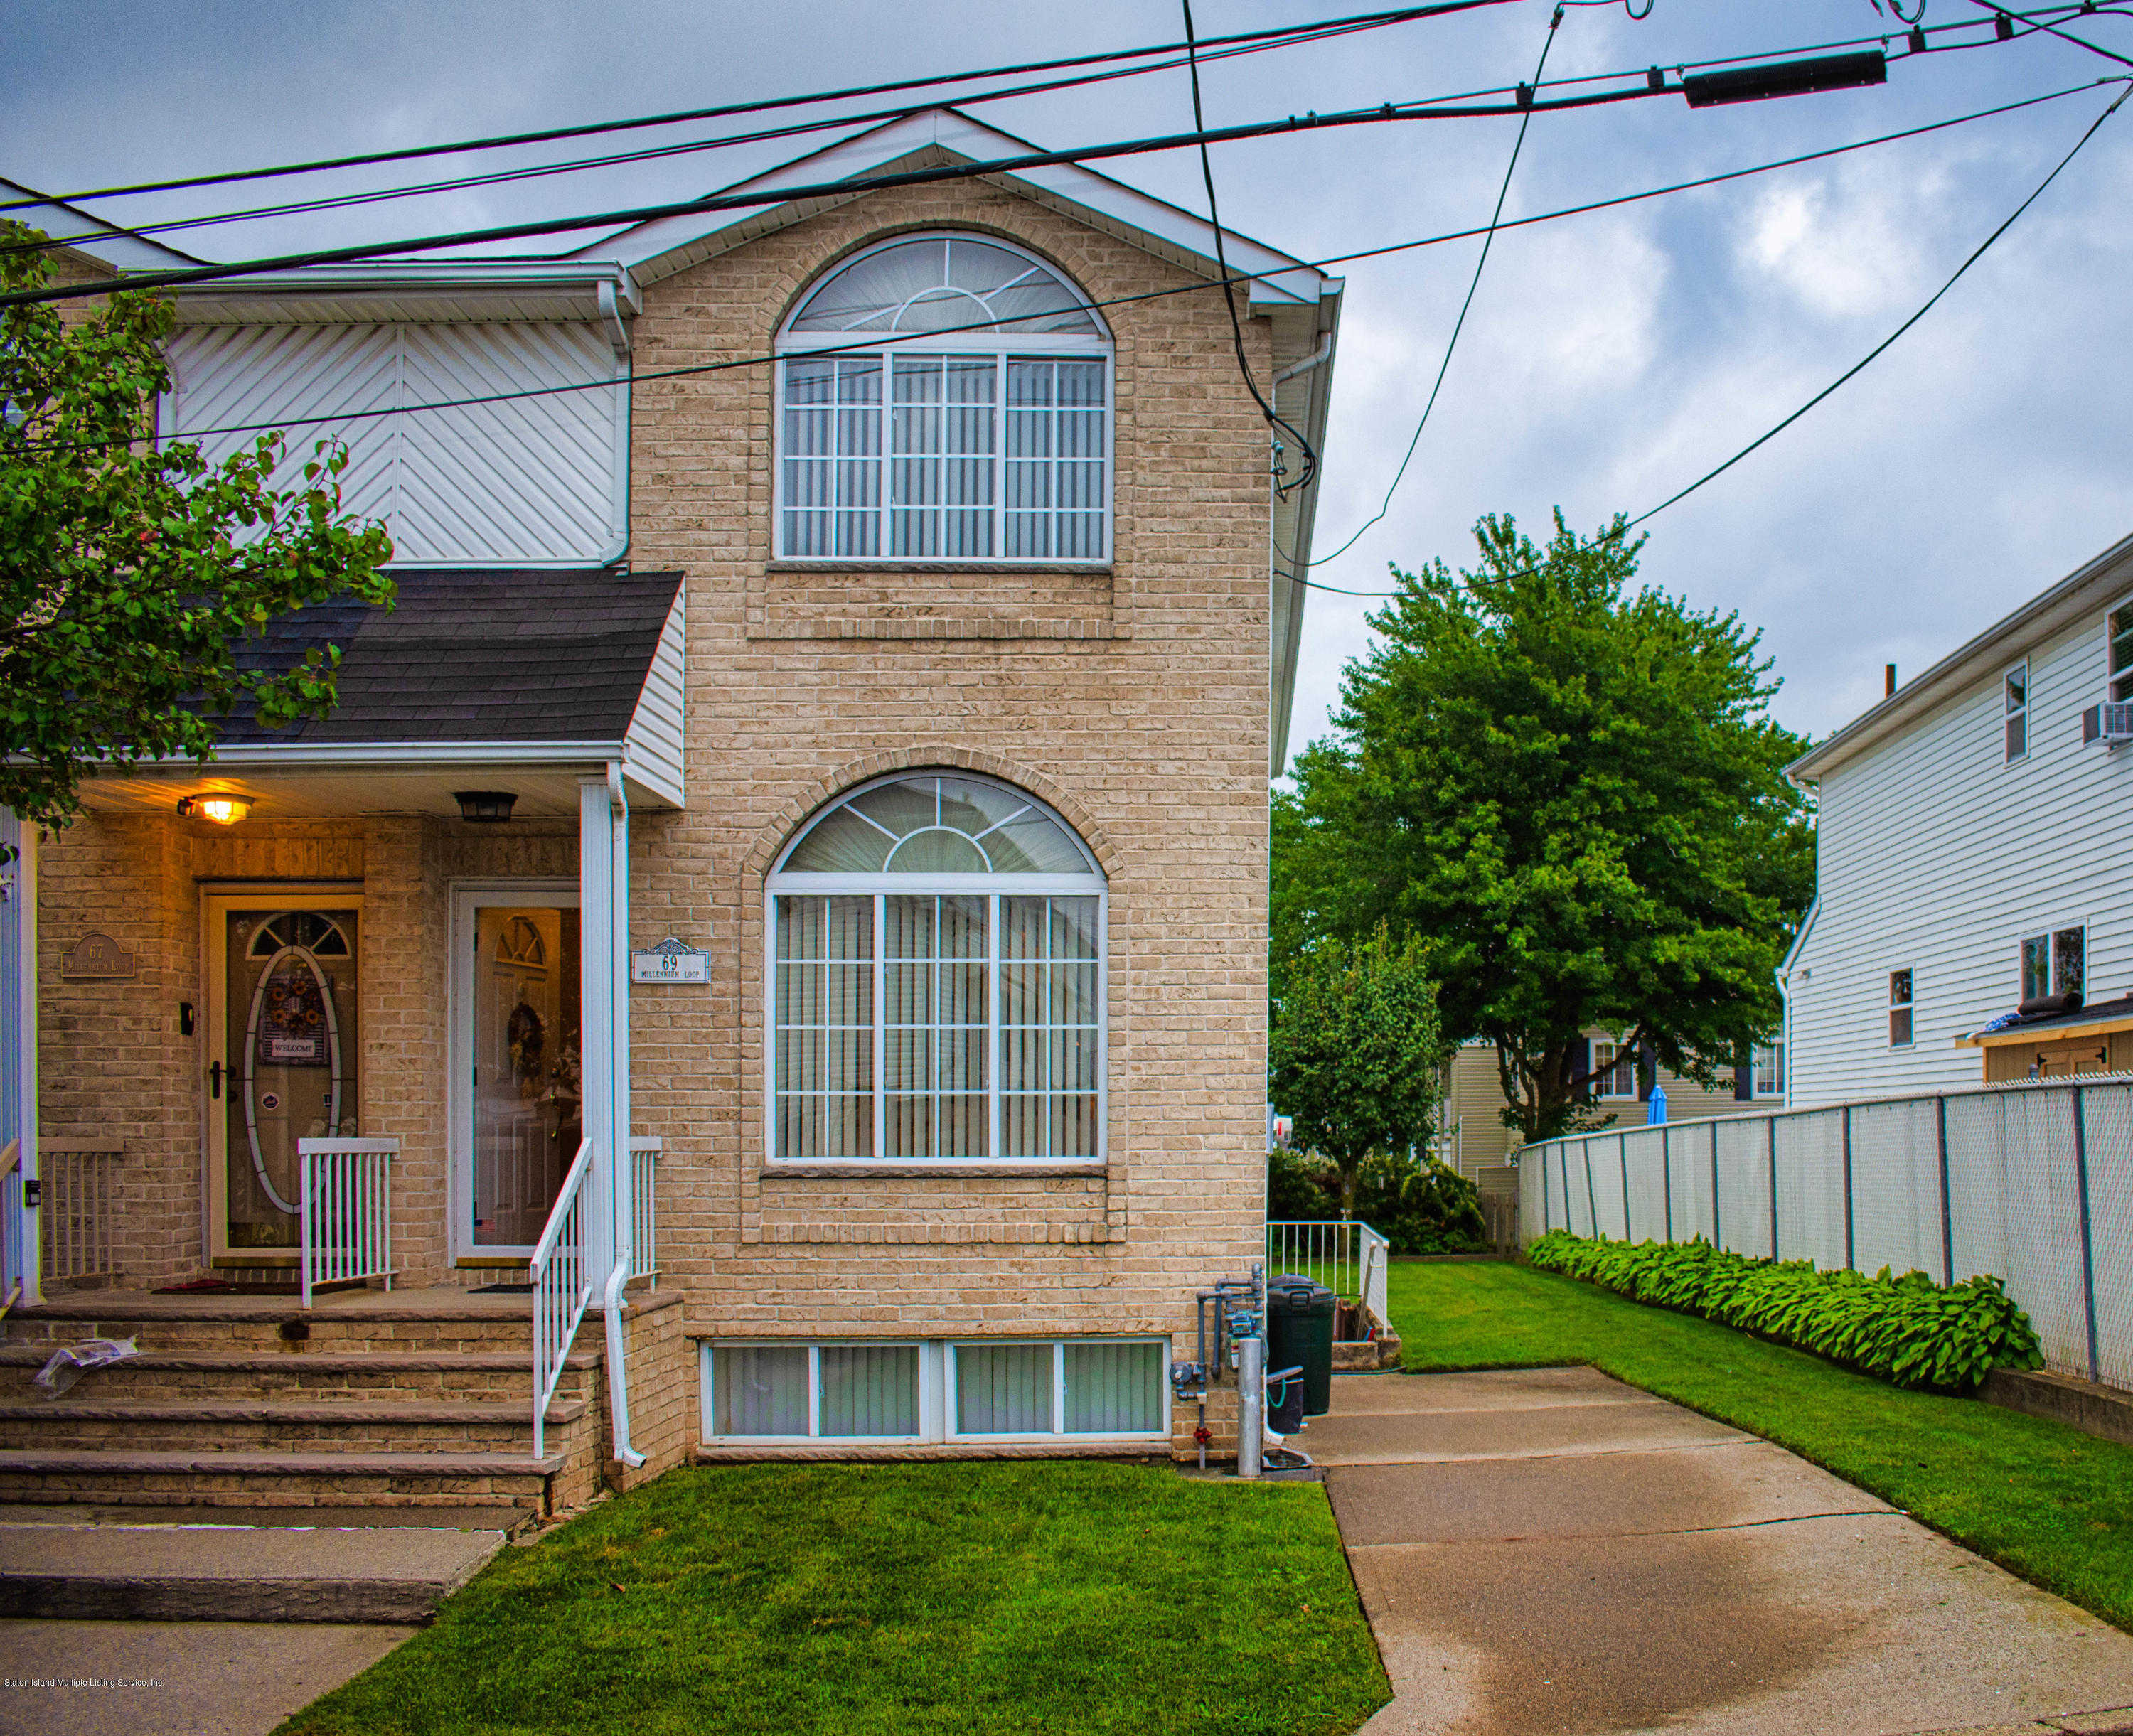 69 Millennium Loop, Staten Island, NY 10309 now has a new price of $585,000!